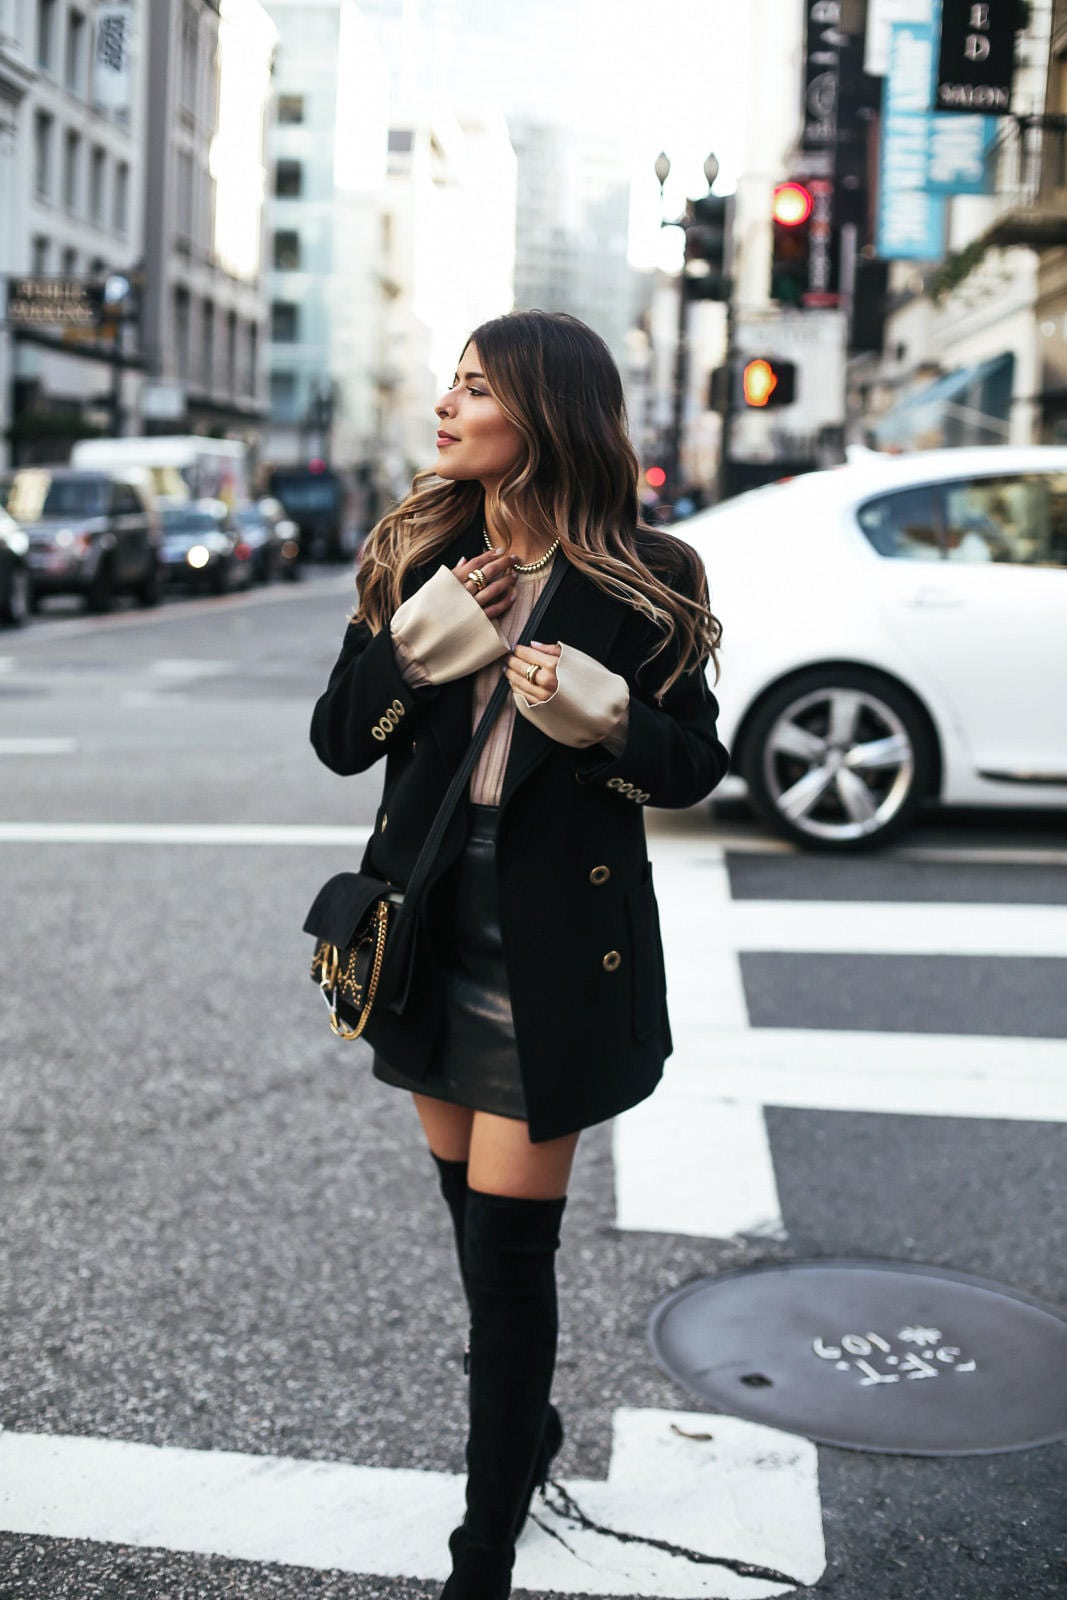 Fall Fashion, Chloe Jacket, Helmut Lang Skirt, Over-the-knee boots, Celine sweater with bell sleeves, Chloe bag, David Yurman Jewelry | The Girl From Panama